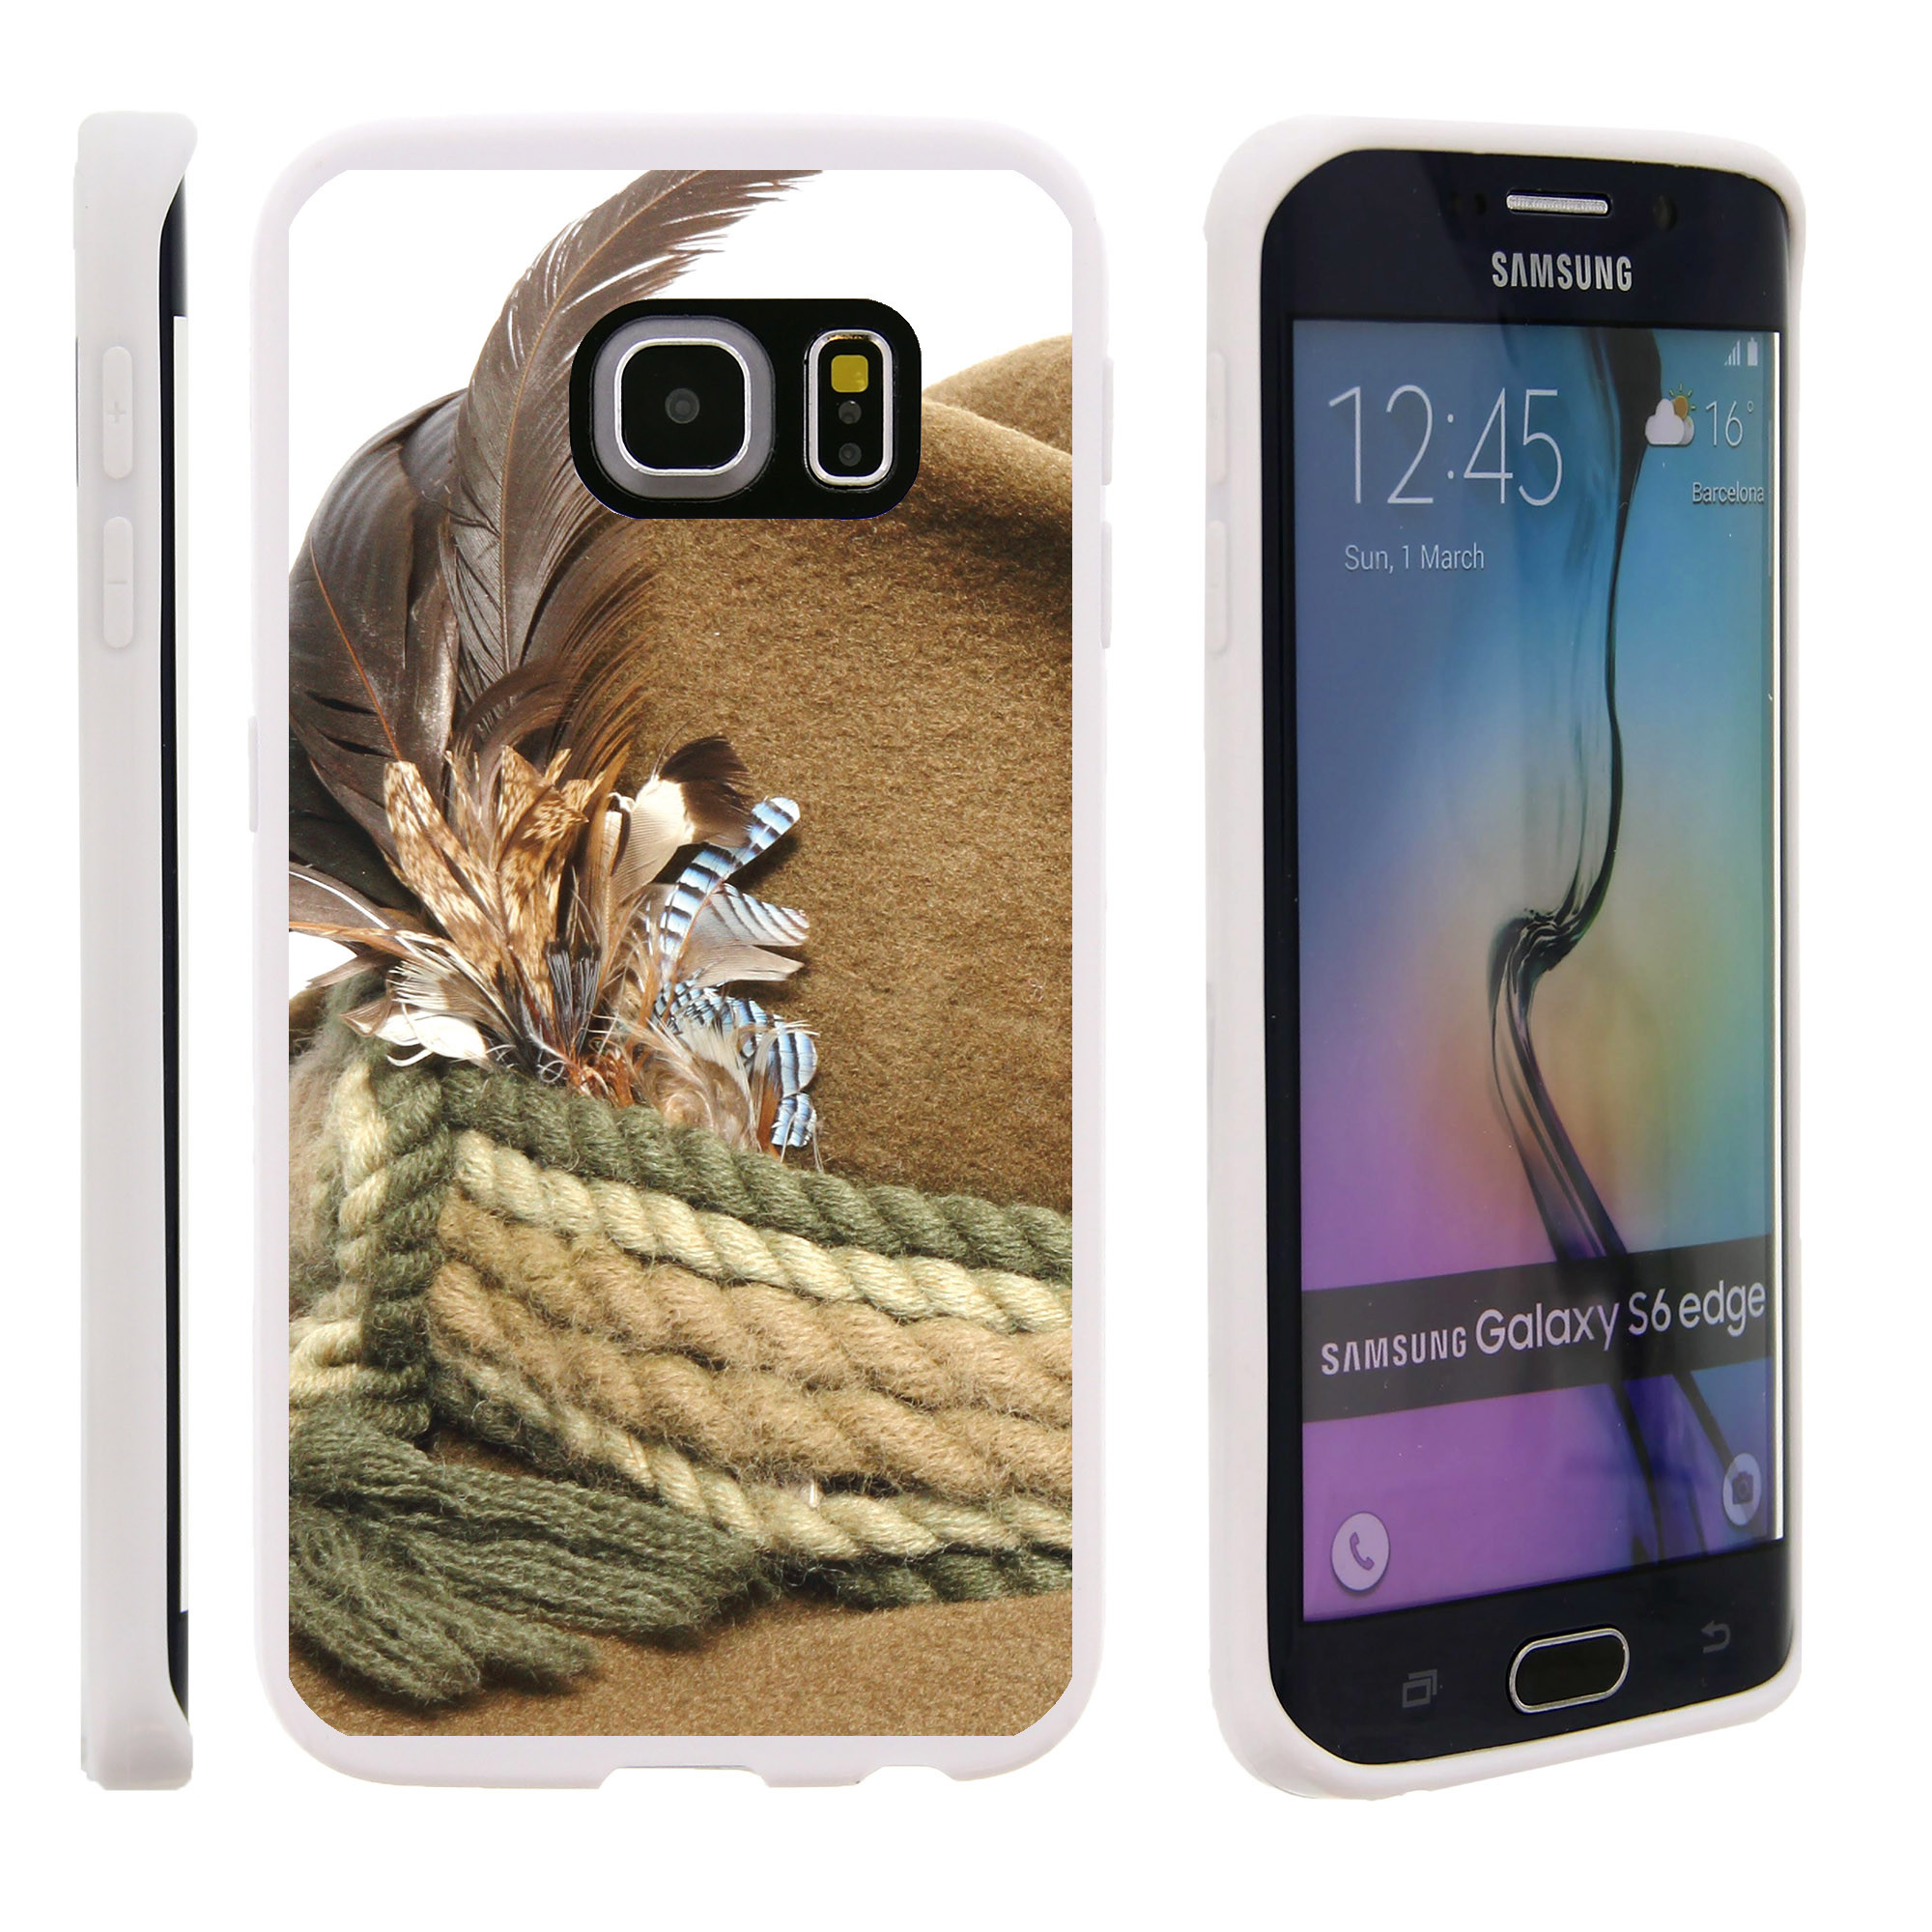 Samsung Galaxy S6 Edge G925, Flexible Case [FLEX FORCE] Slim Durable TPU Sleek Bumper with Unique Designs - Rope and Feathers